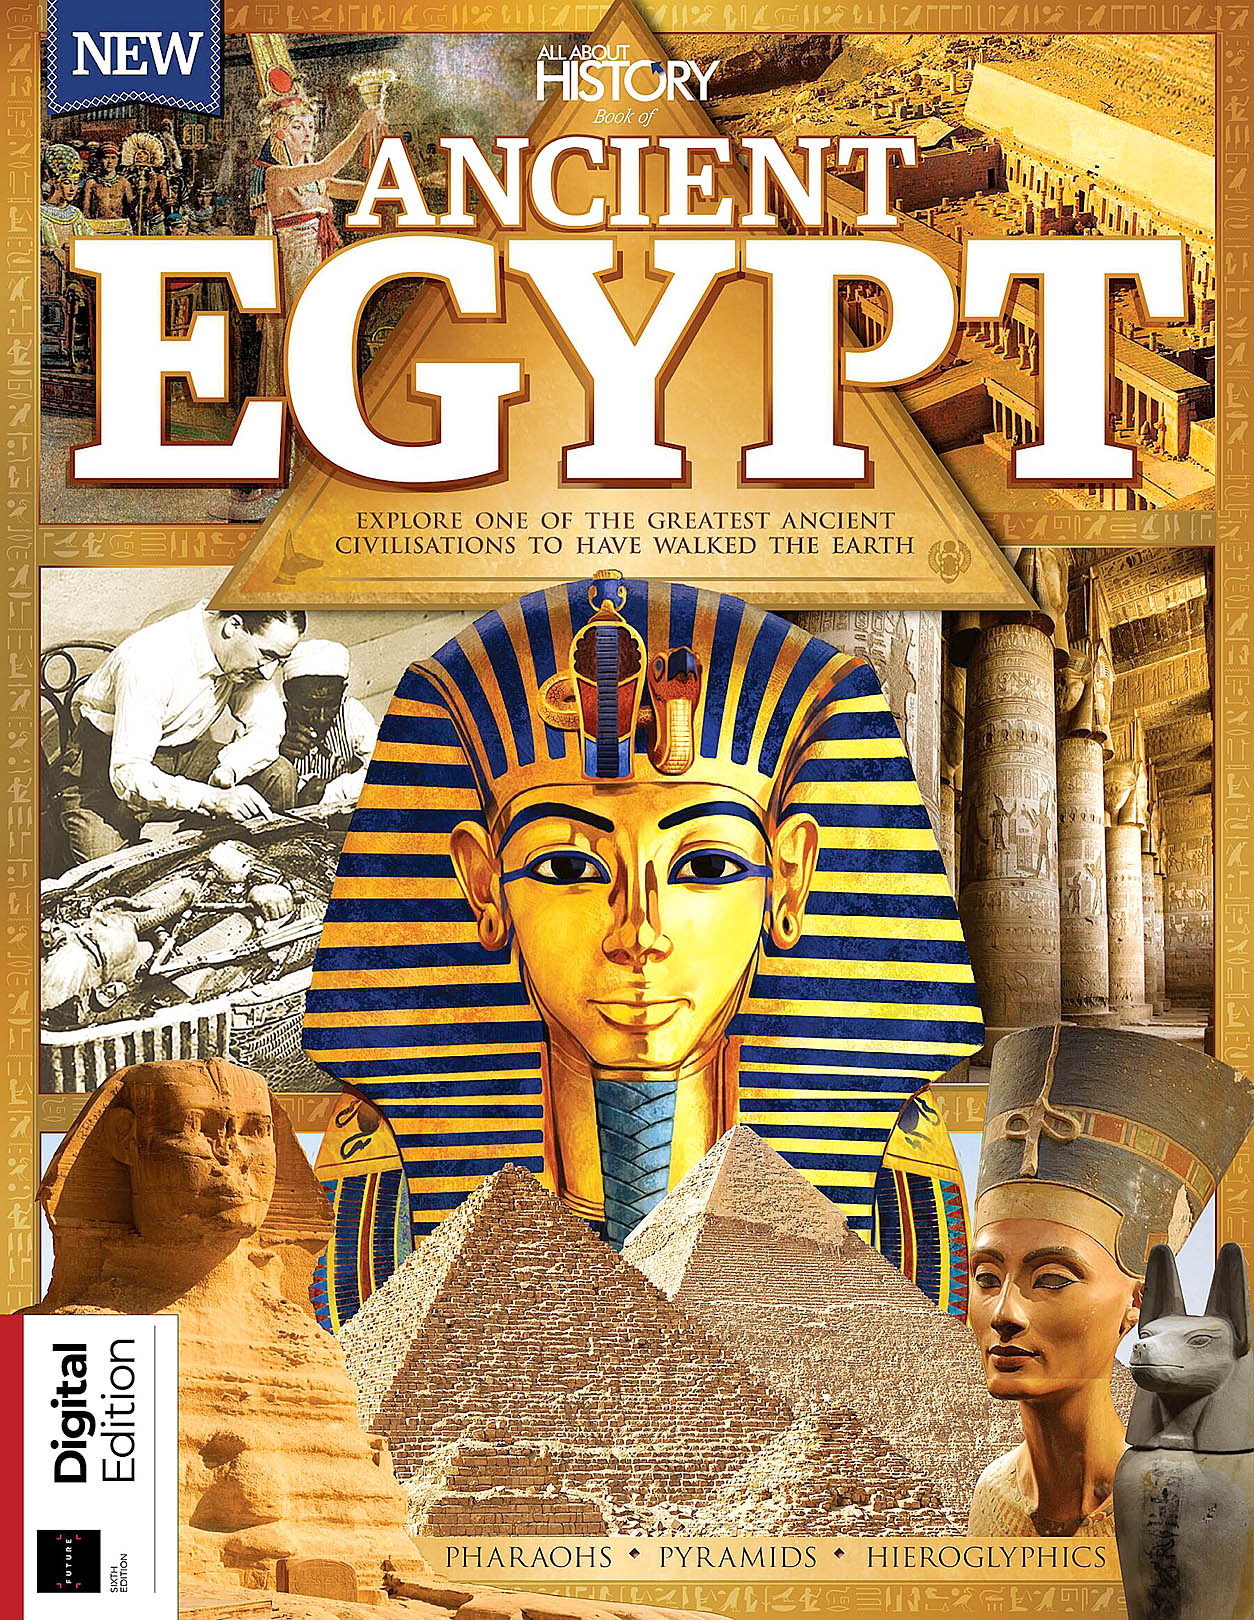 All About History - Book Of Ancient Egypt 6th Ed 2020 01.jpg